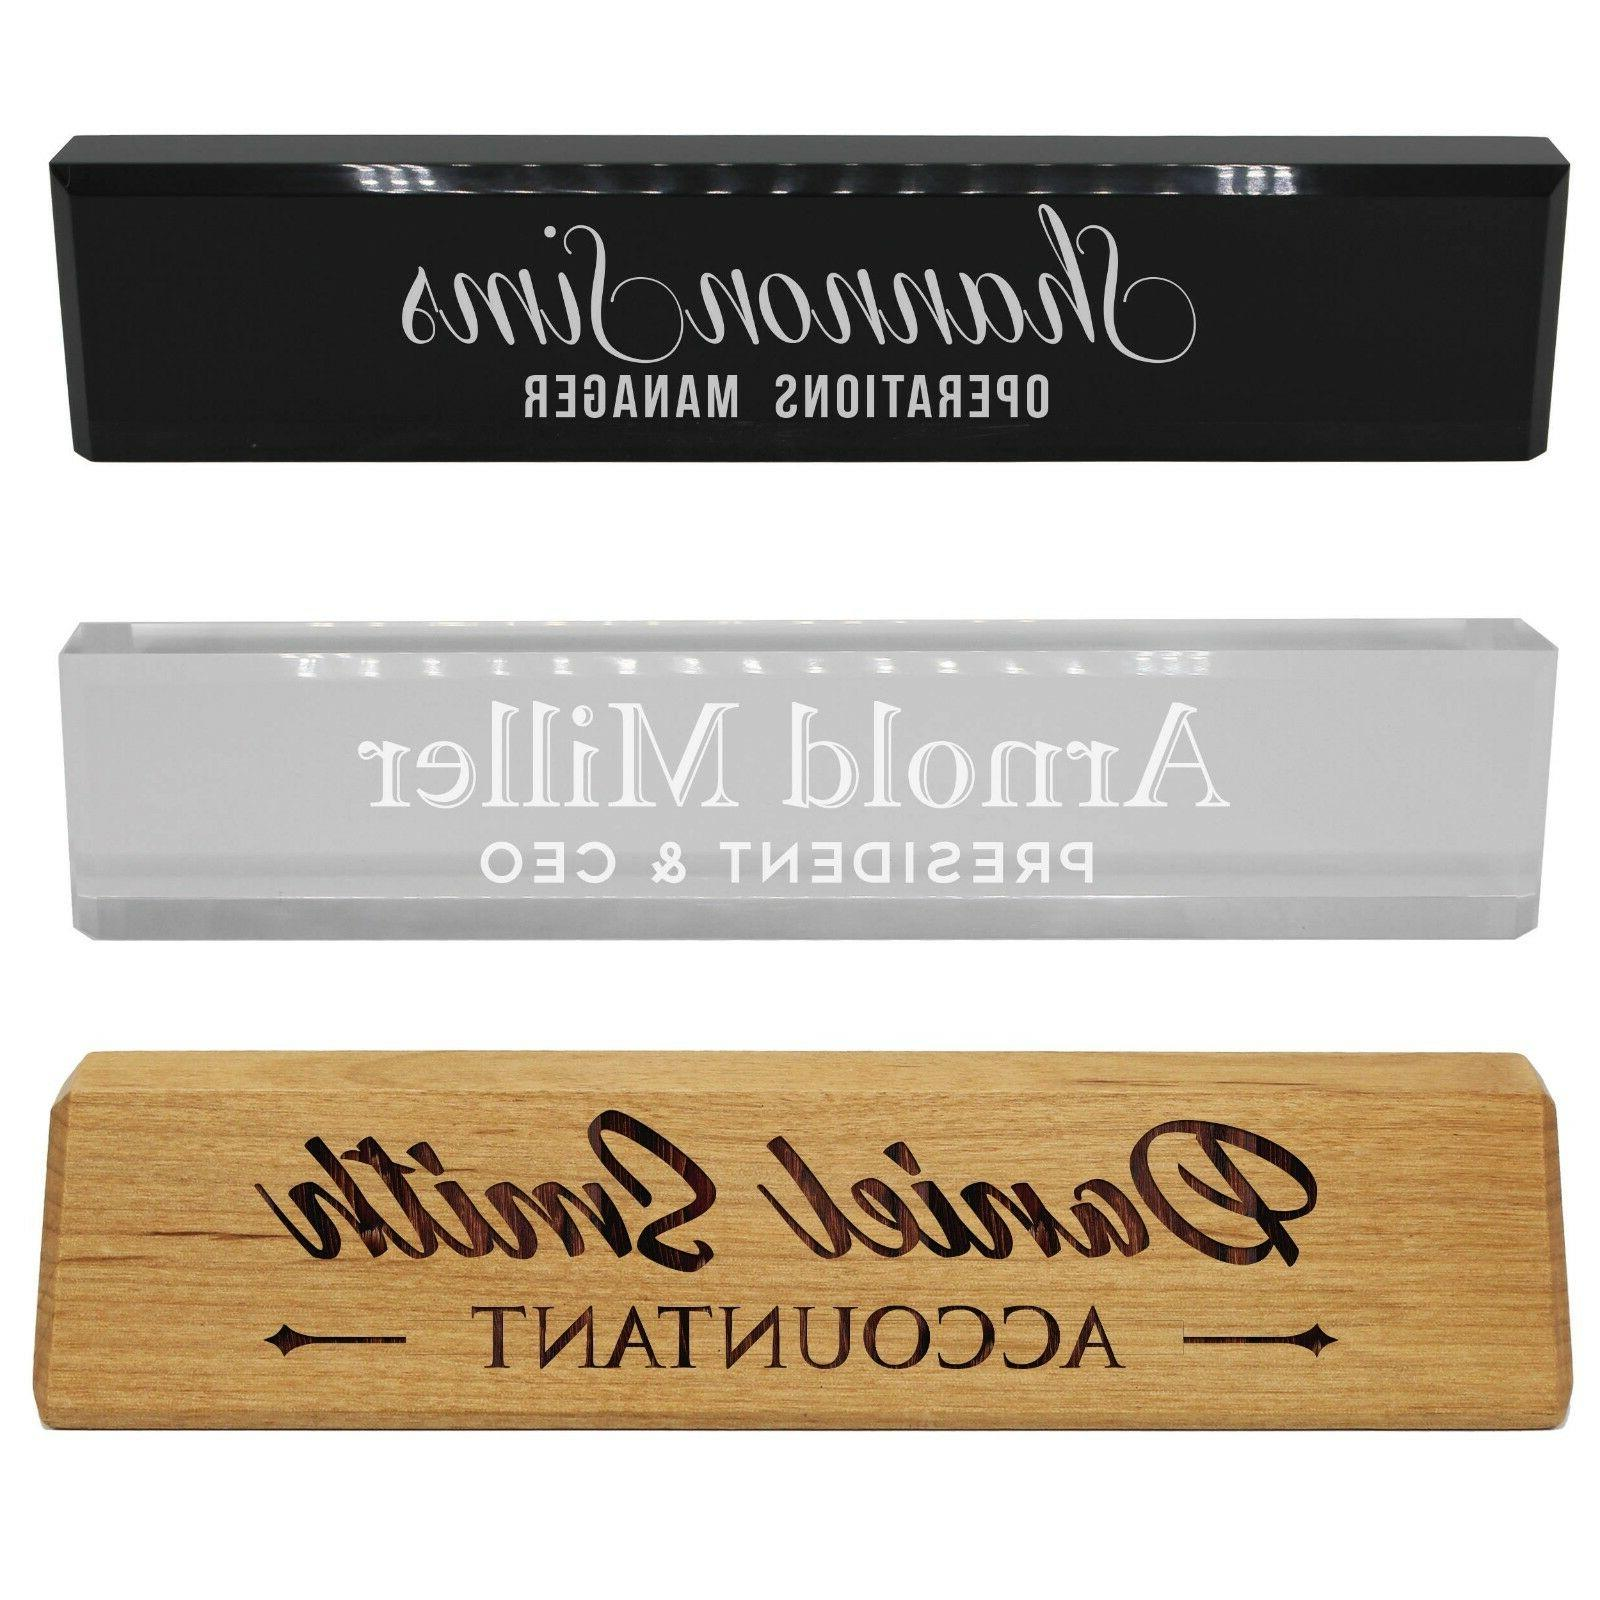 Personalized Engraved Office